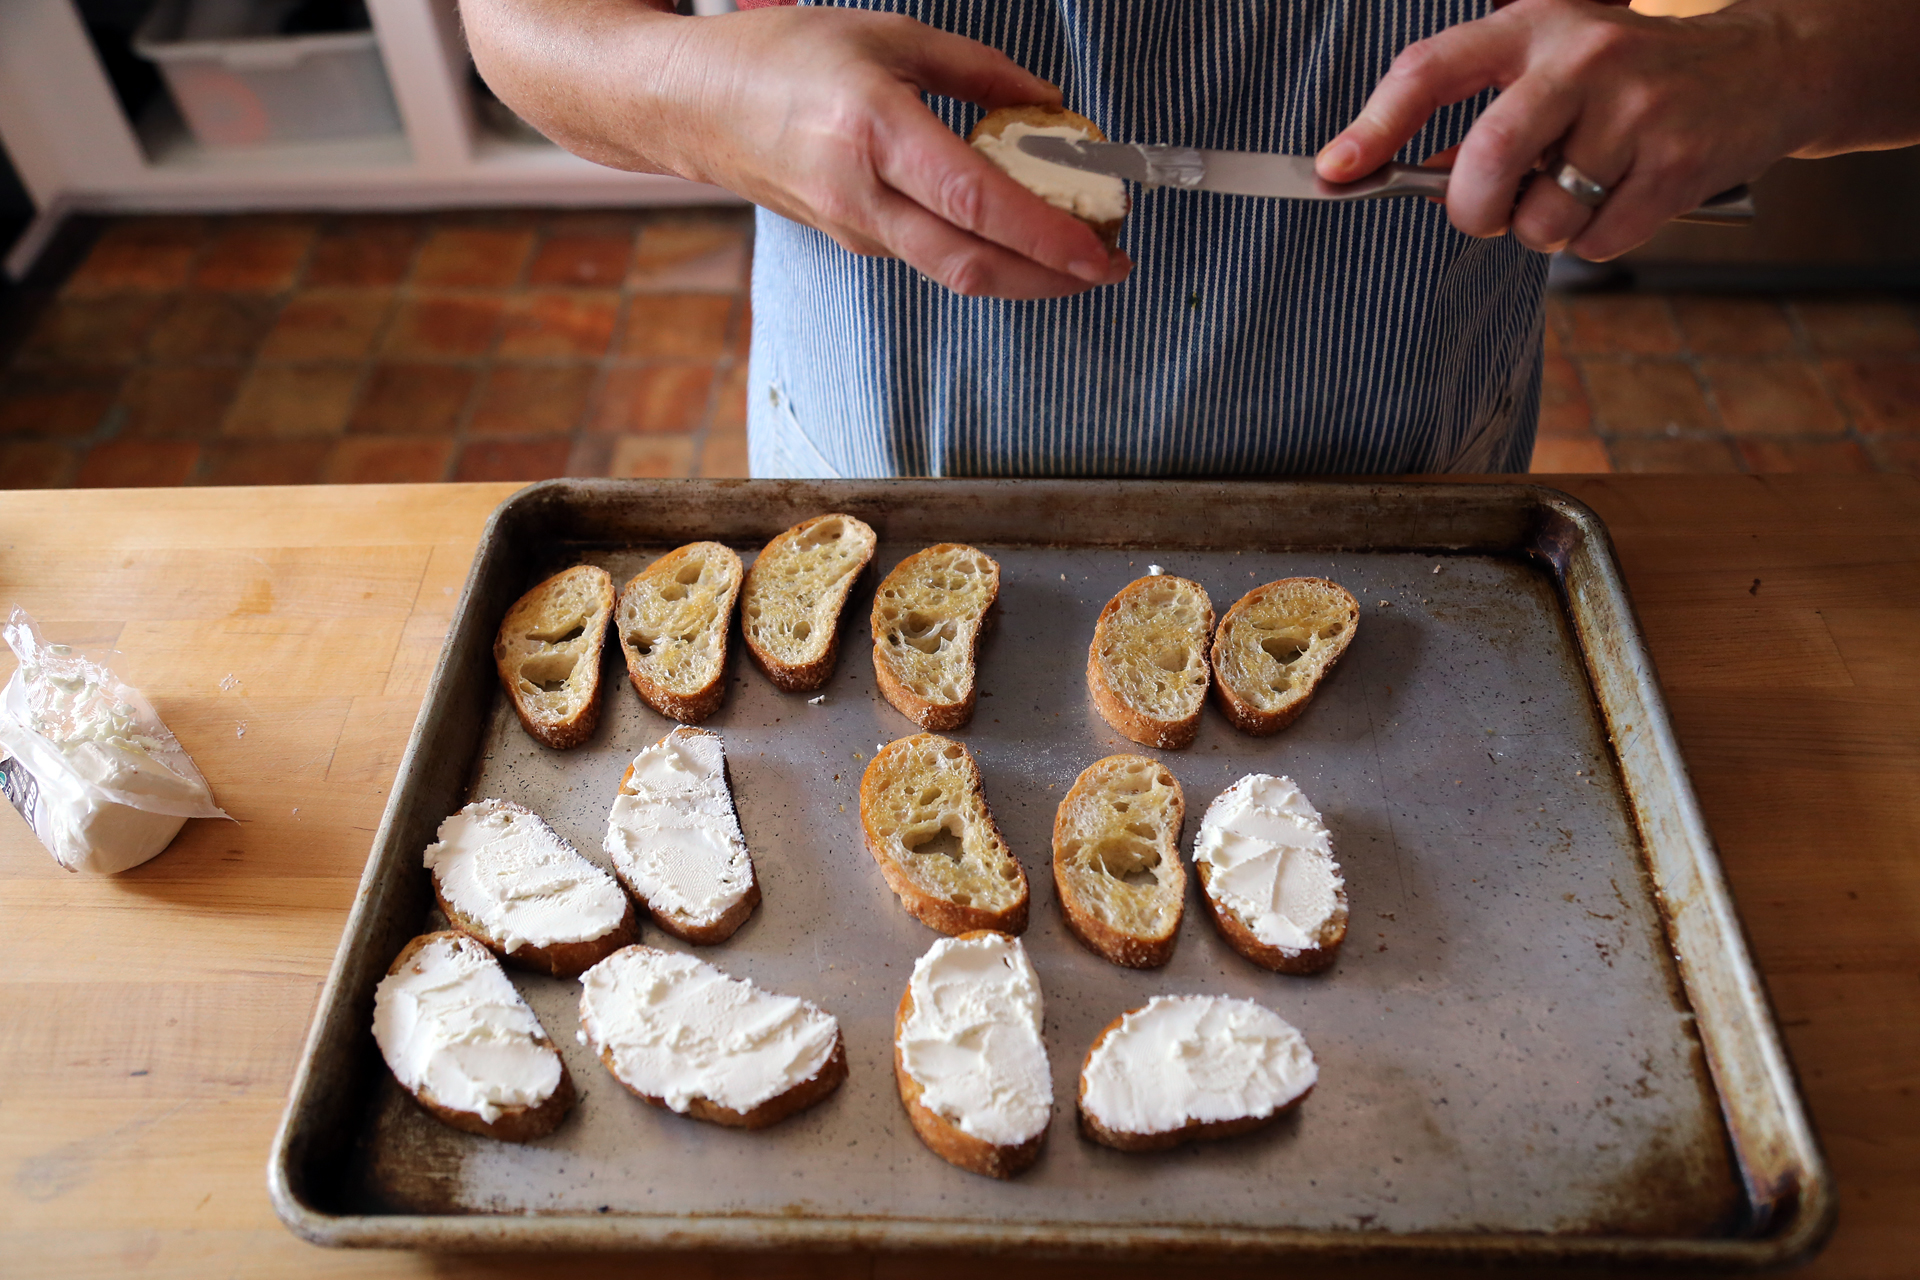 Spread each crostini thickly with goat cheese.